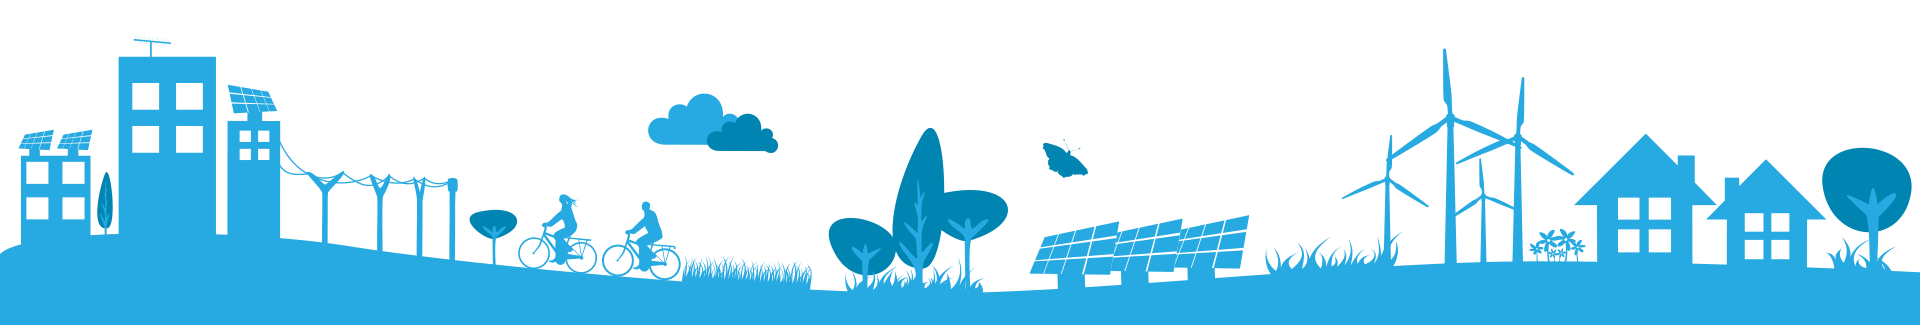 Illustration: Community with energy efficient buildings, solar panel array, wind turbines, trees, flowers, and people riding bicycles.